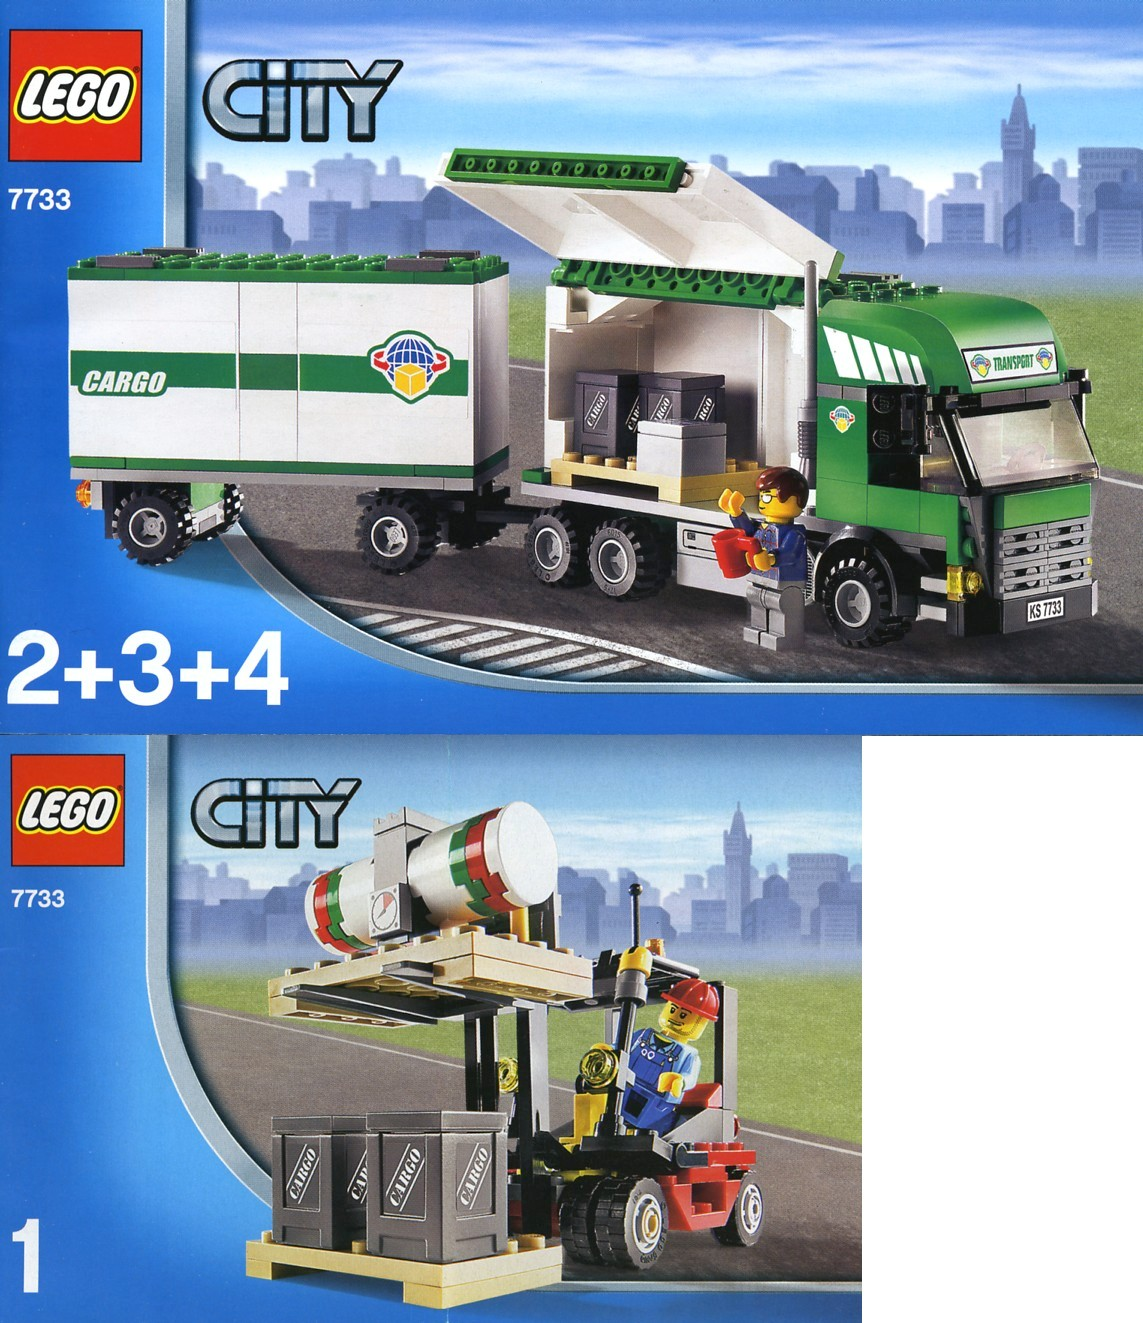 City Tagged Articulated Lorry Brickset Lego Set Guide And Heavy Hauler 7998 Truck Forklift